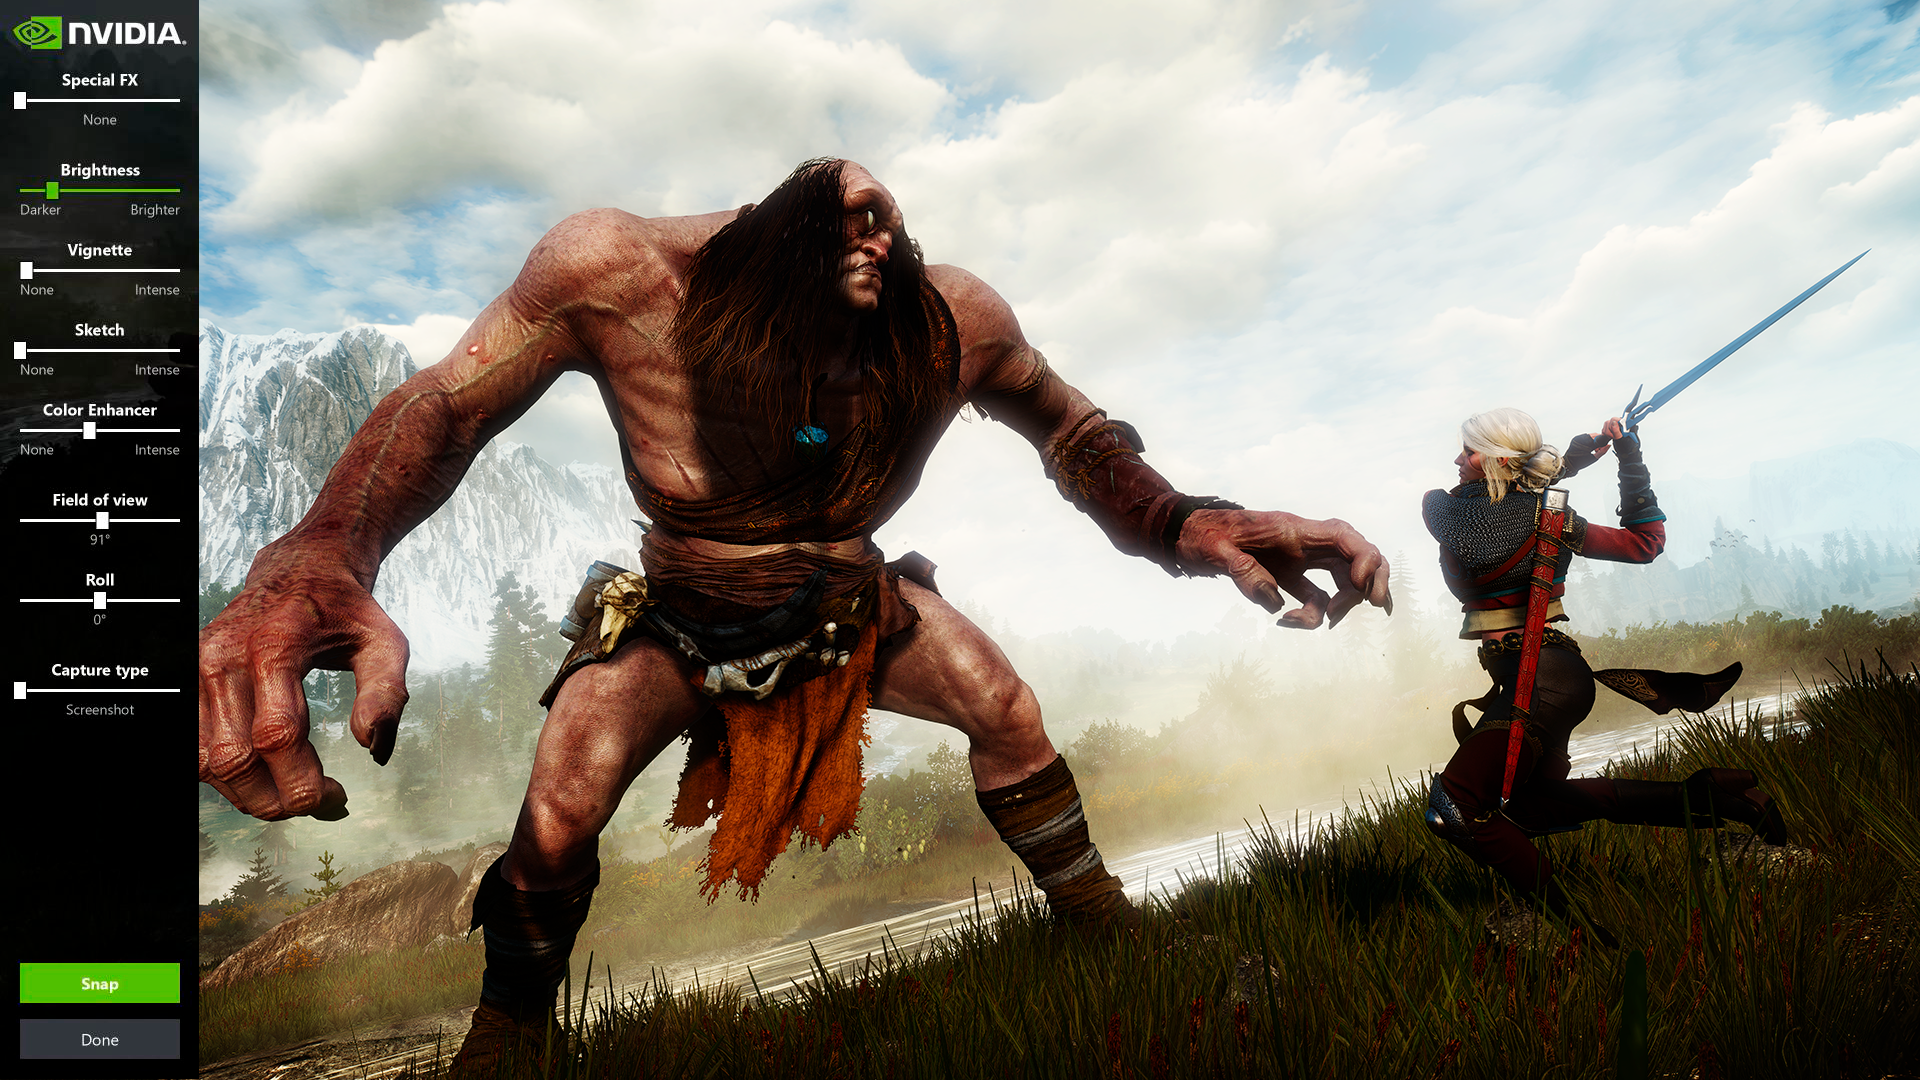 Witcher 3 captured using Nvidia's Ansel photo mode, with the controls visible